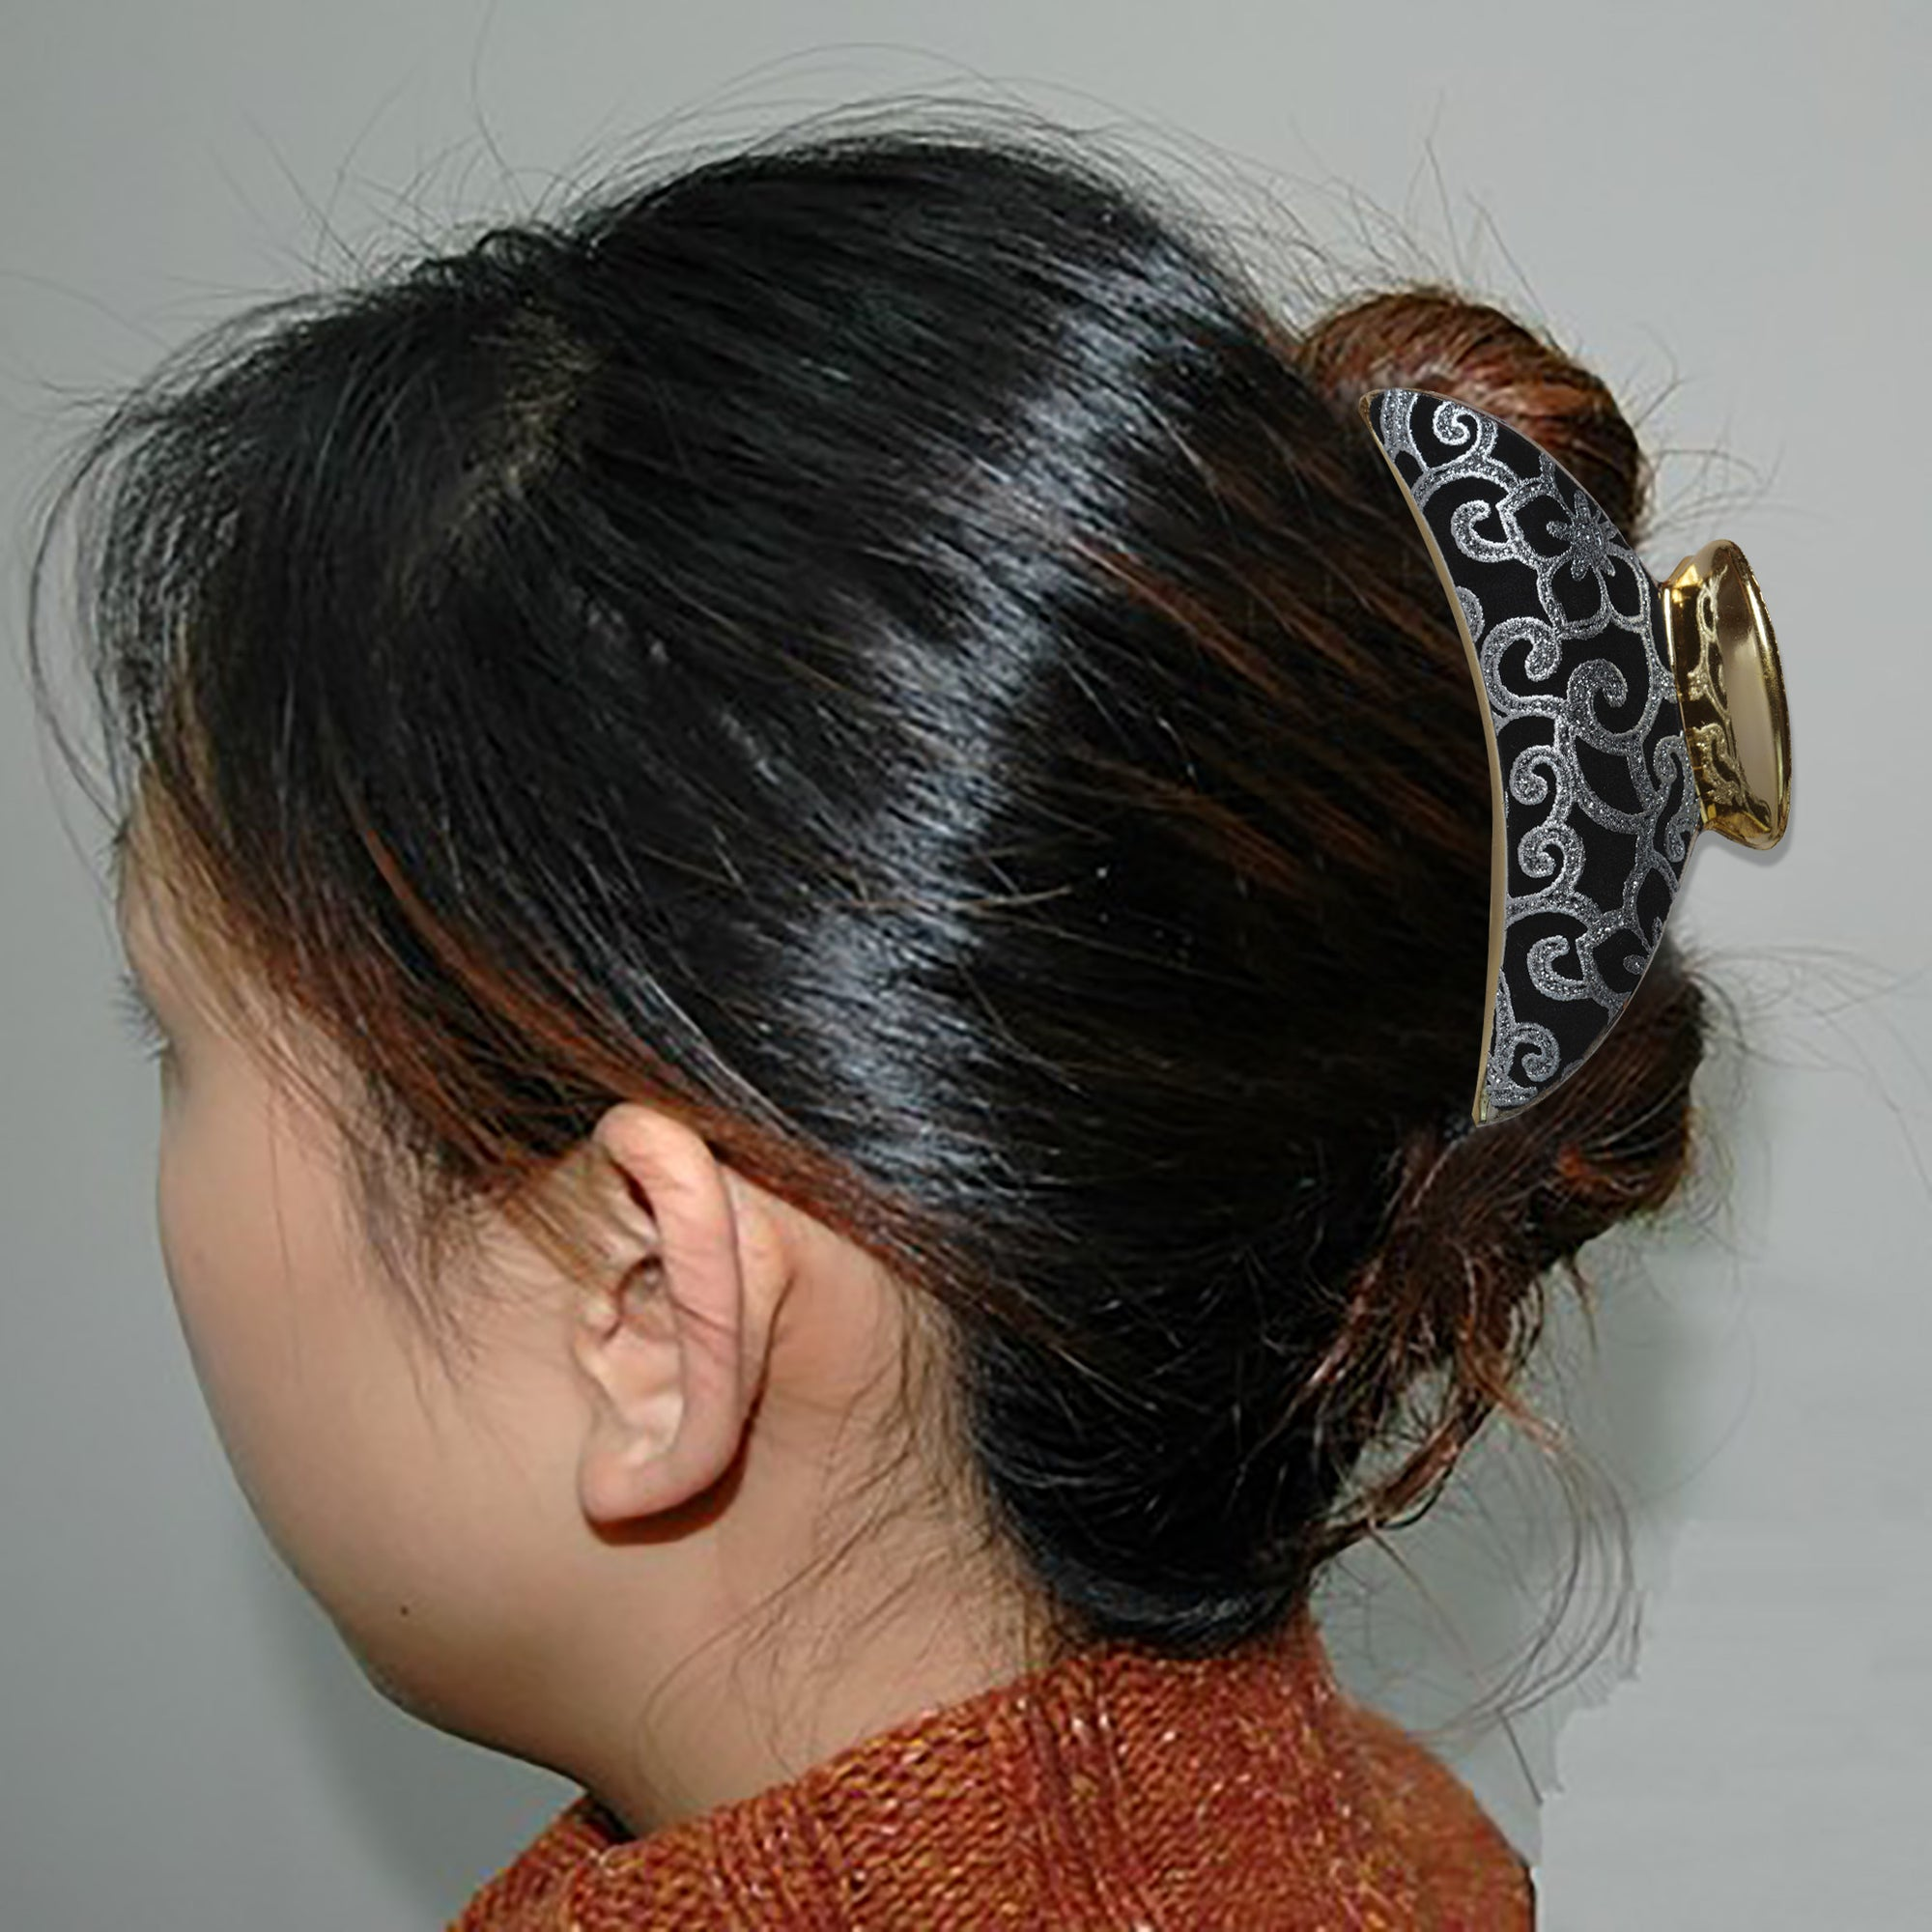 brandsego - Well Designed Hair Catcher-SK0401